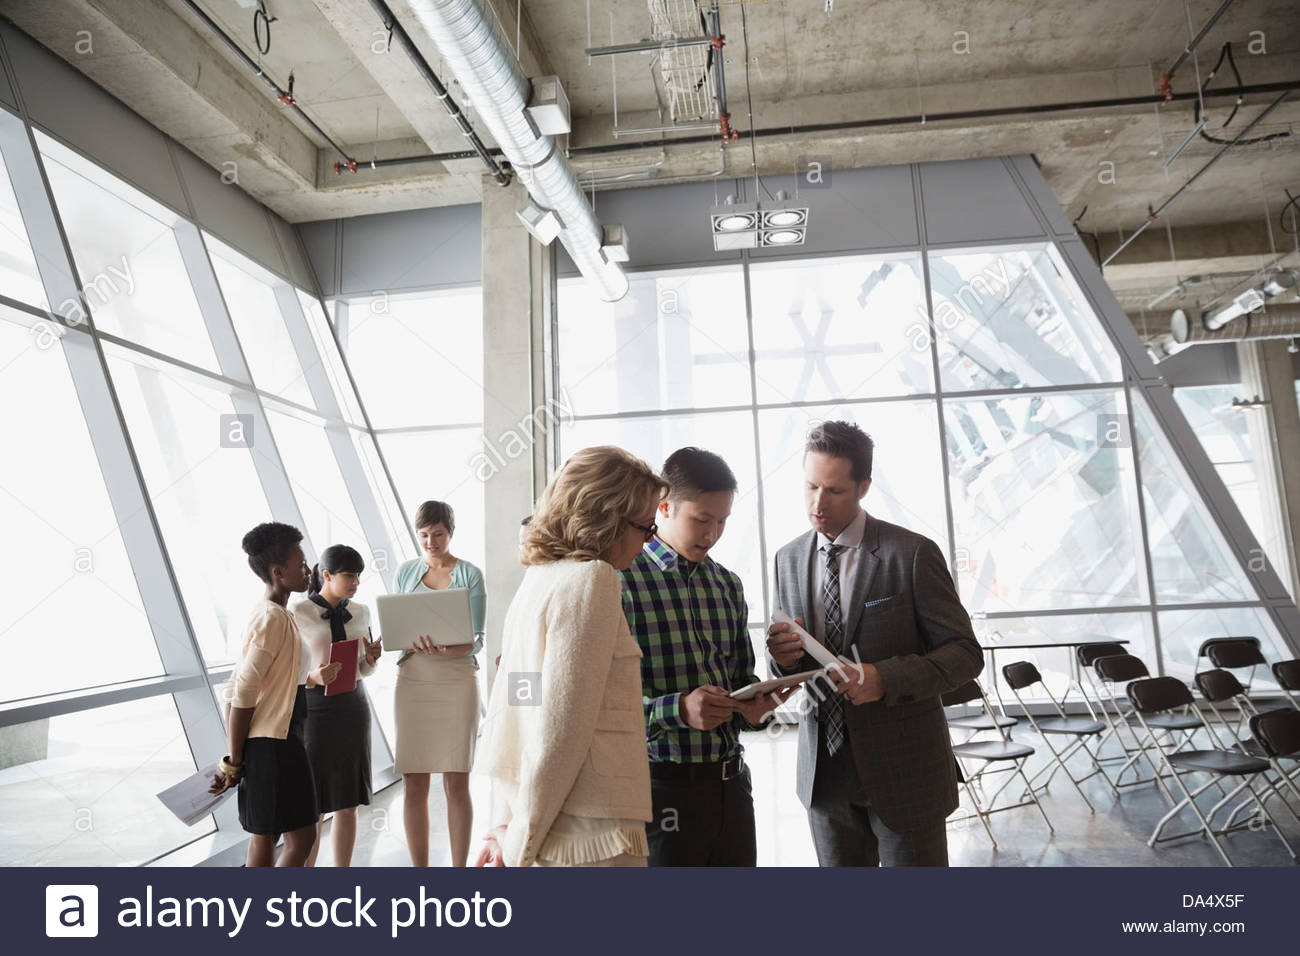 Group of business people with technology talking in office building - Stock Image